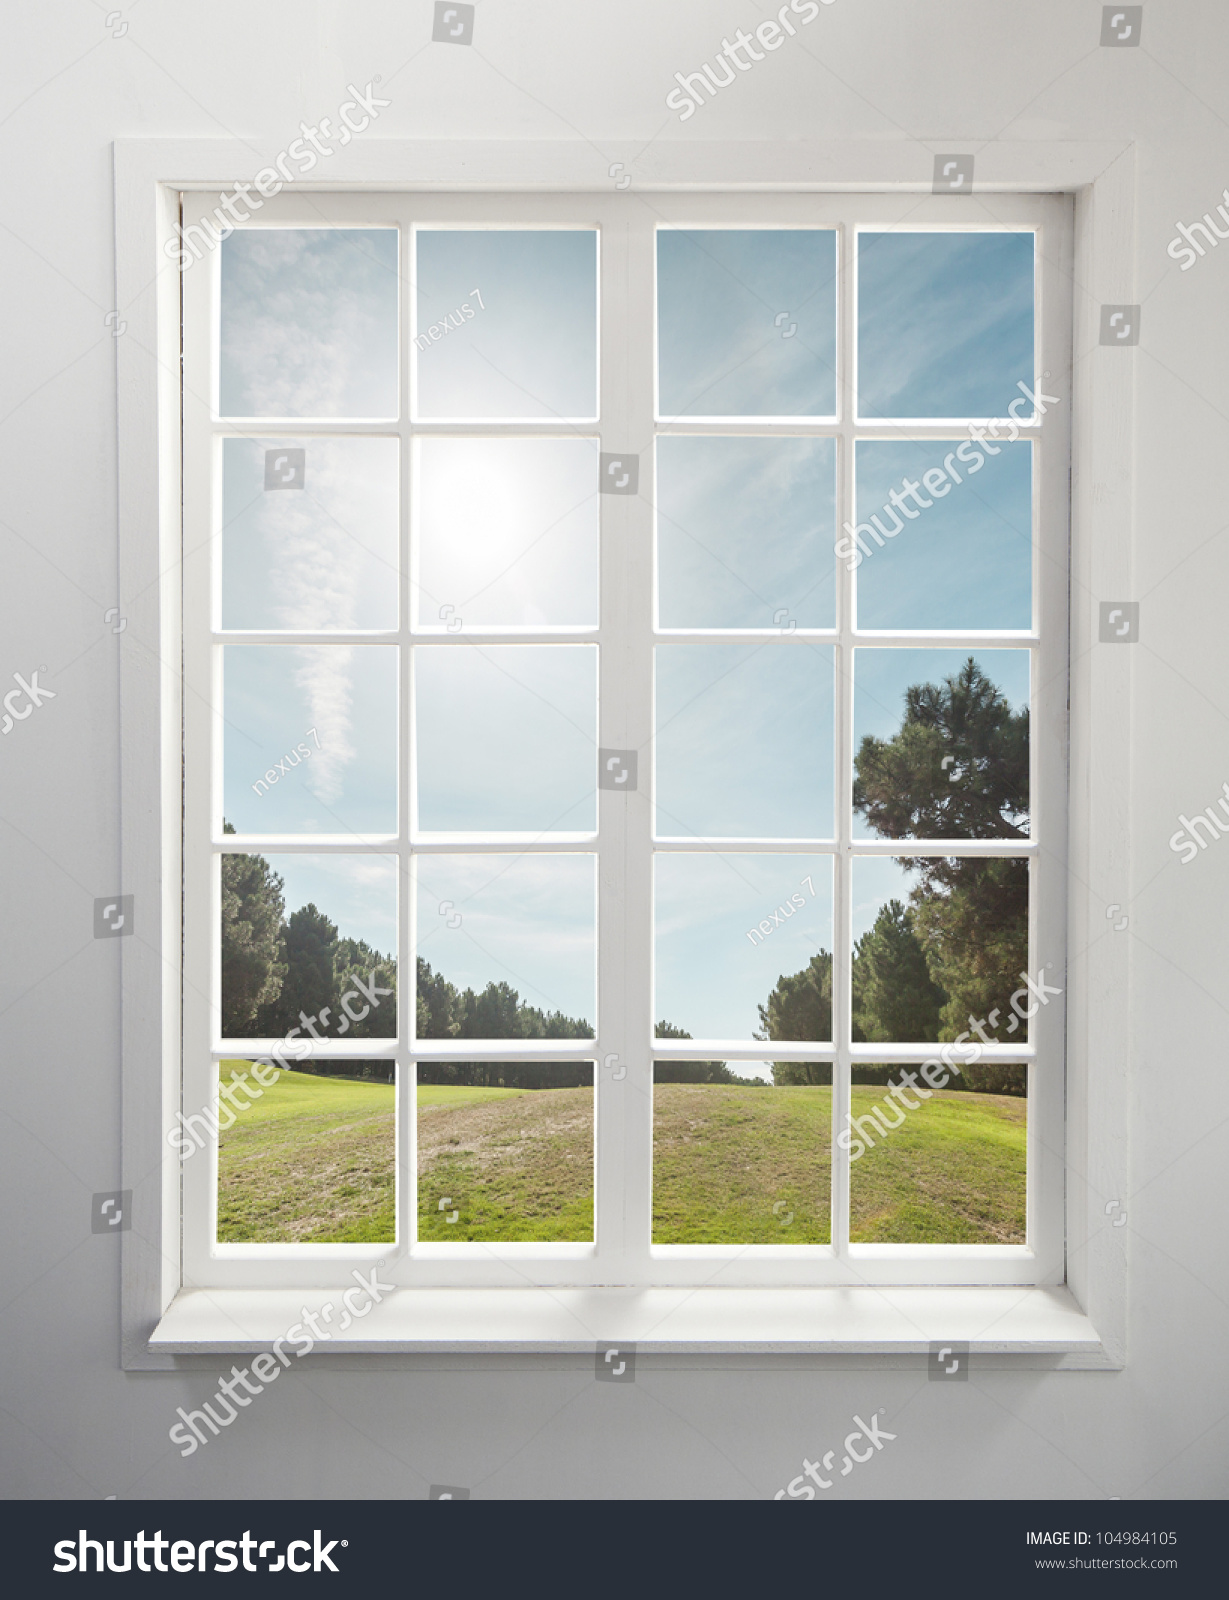 Modern residential window trees sky behind stock photo for Modern window design residential